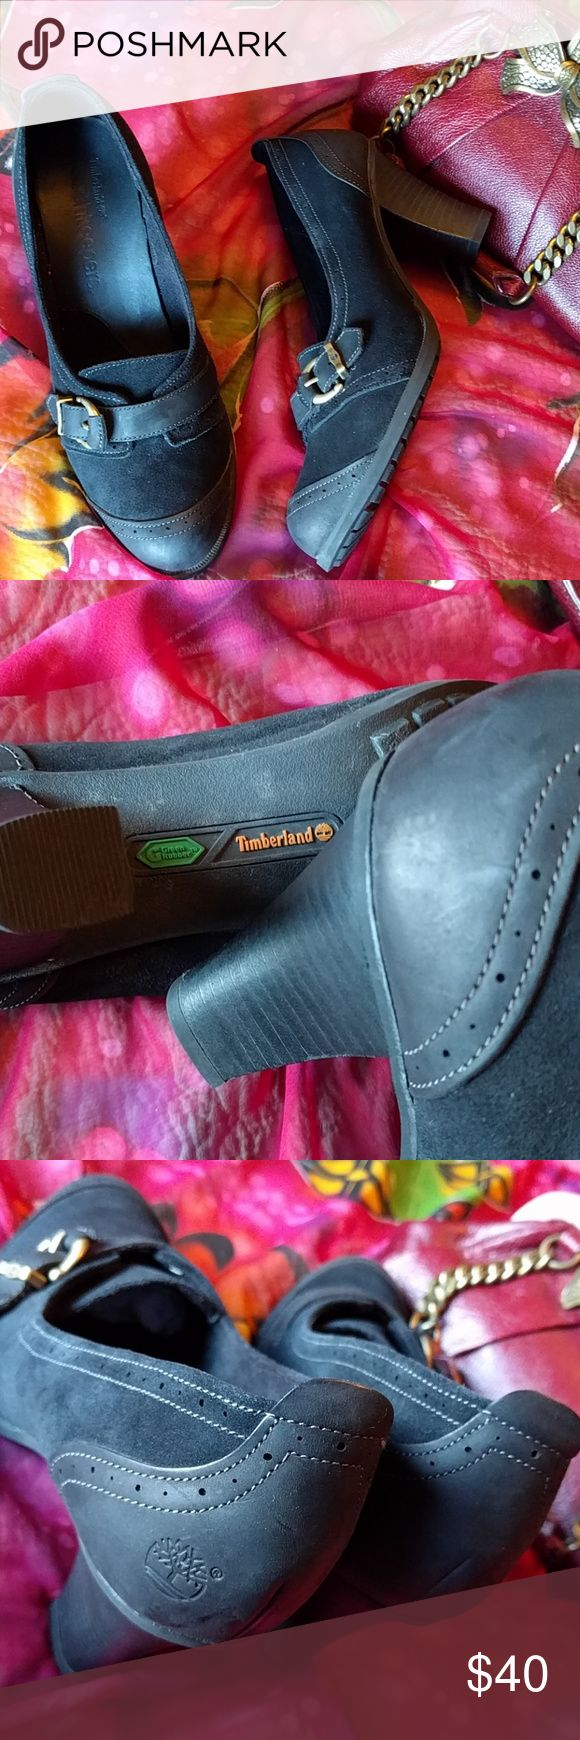 """Timberland Earthkeepers heels size 9.5 Comfortable rubbersoled 3"""" heeled suede and leather uppers shoes. Antique buckles across the top. Only wore a couple of times no real damage. Timberland Shoes Heels"""